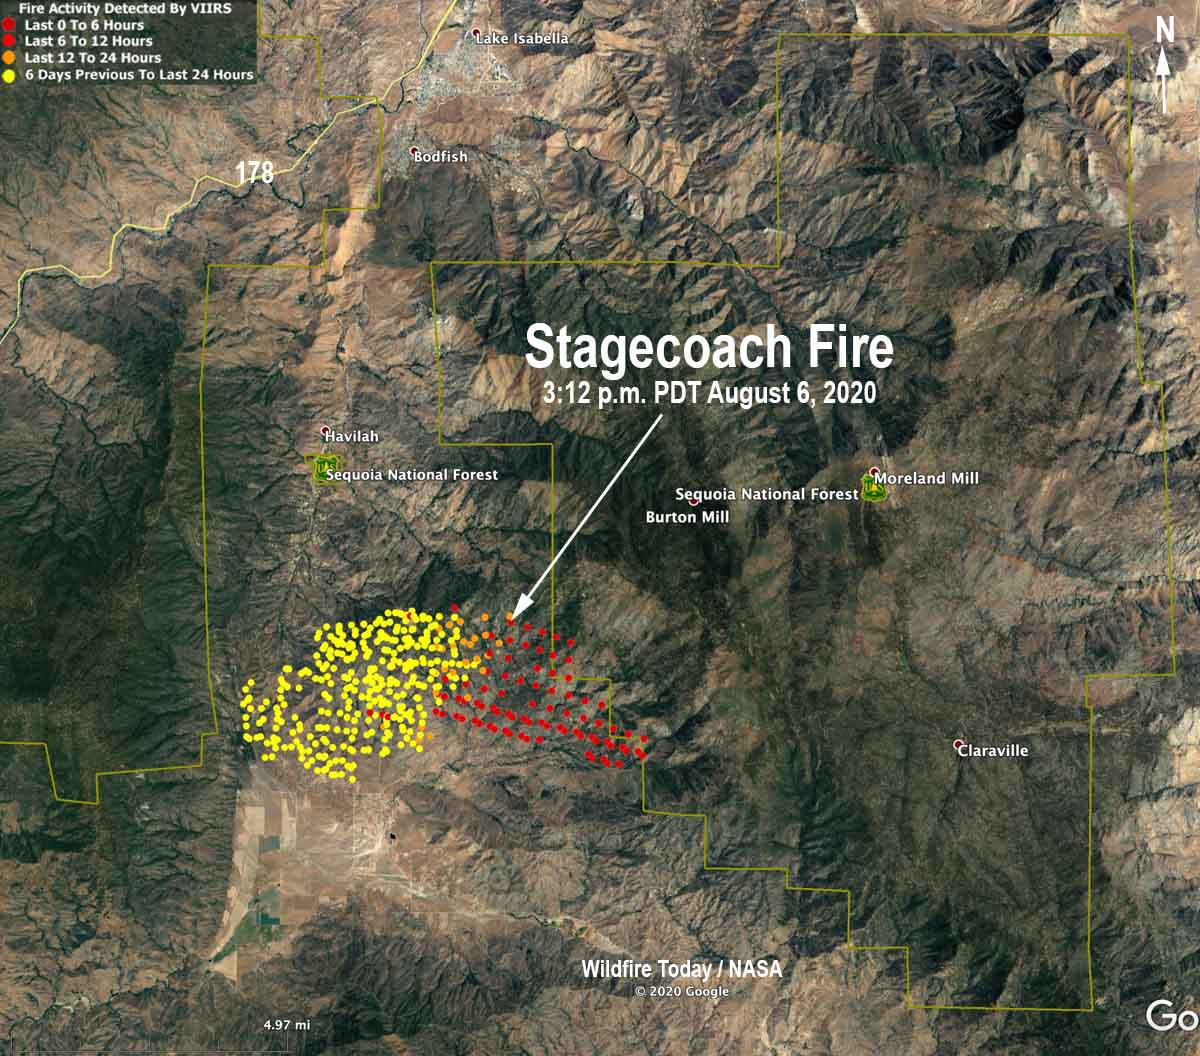 Map of the Stagecoach Fire